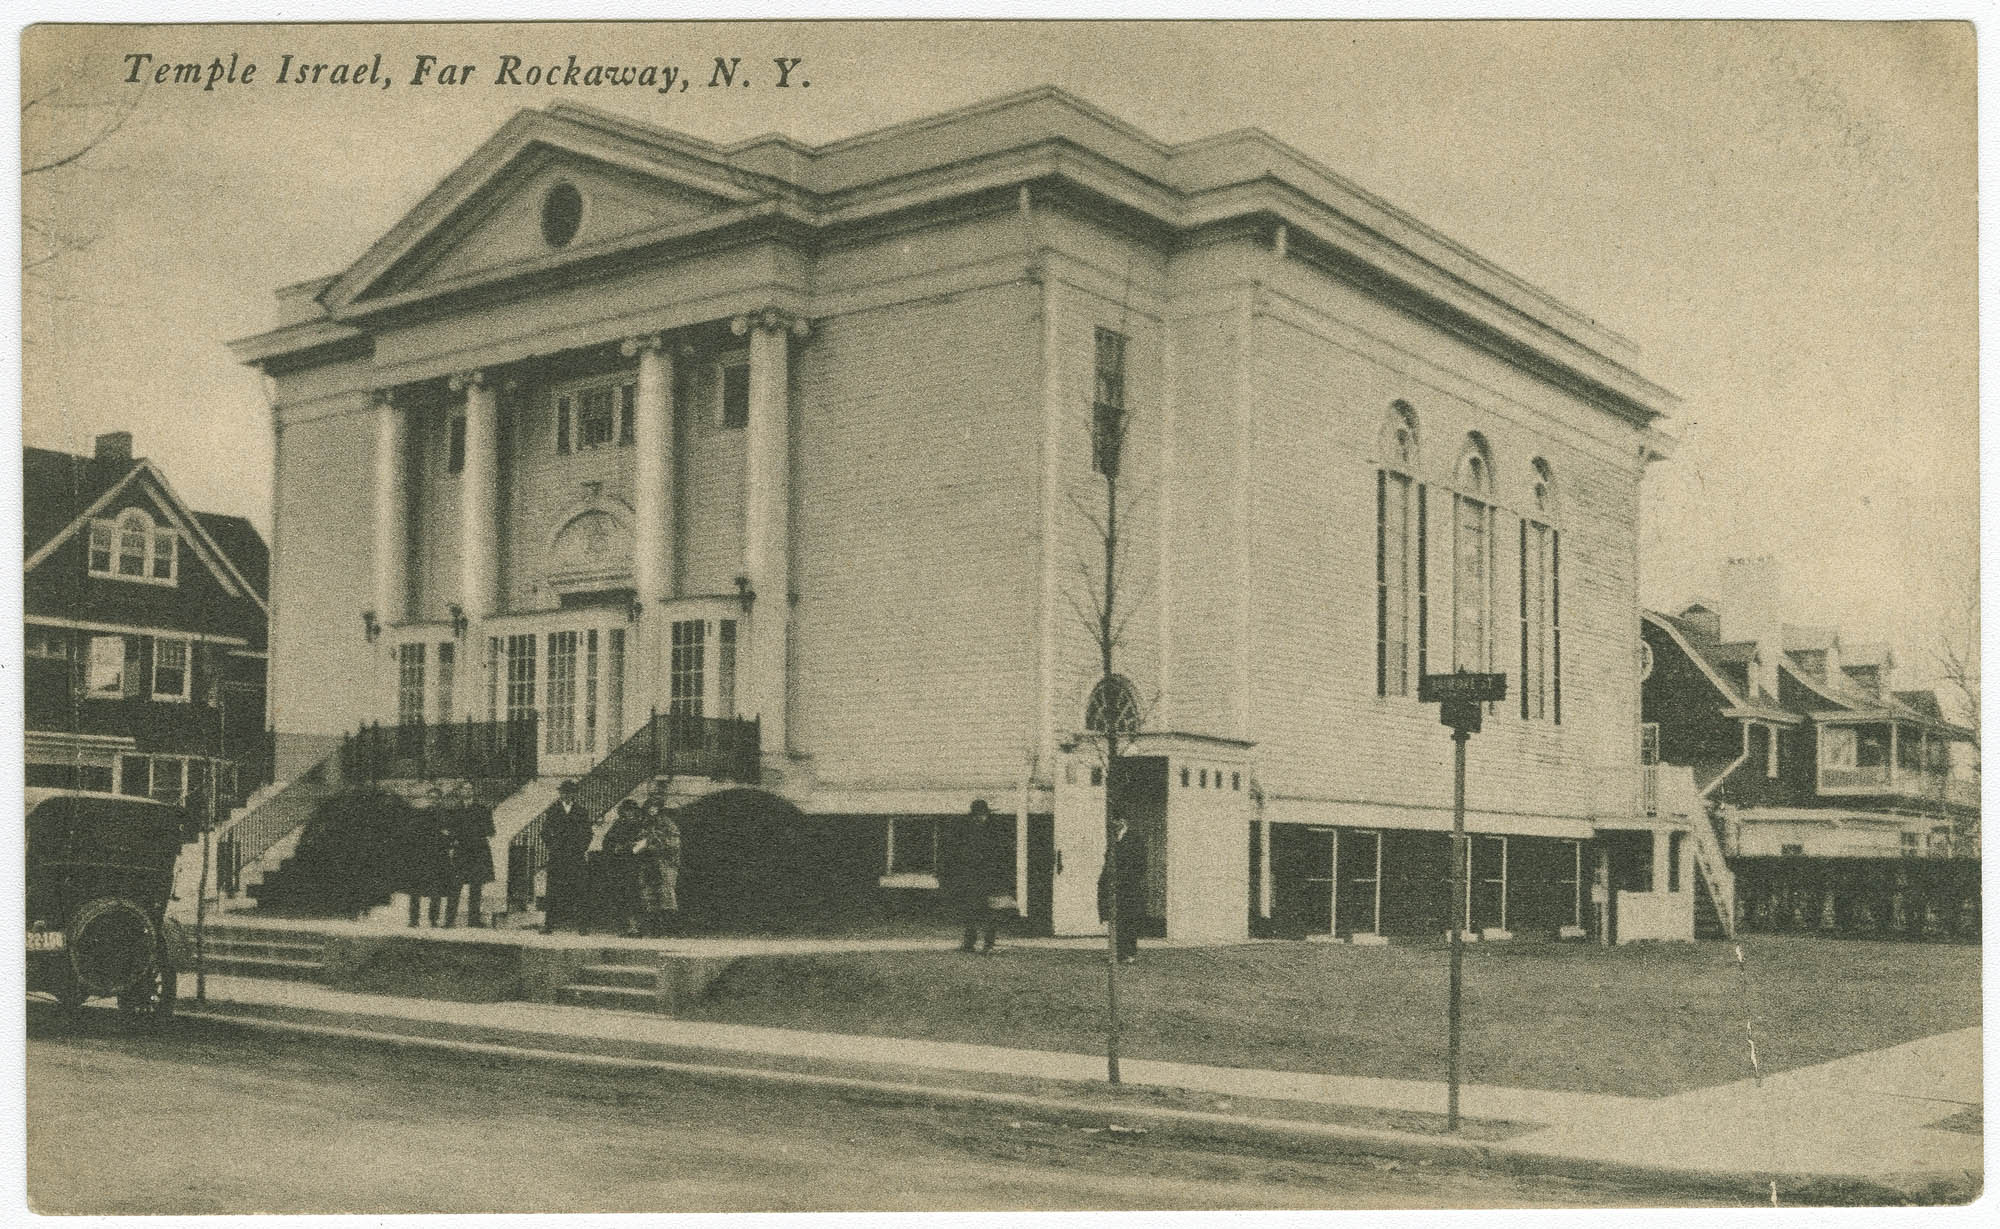 Temple Israel, Far Rockaway, N.Y.